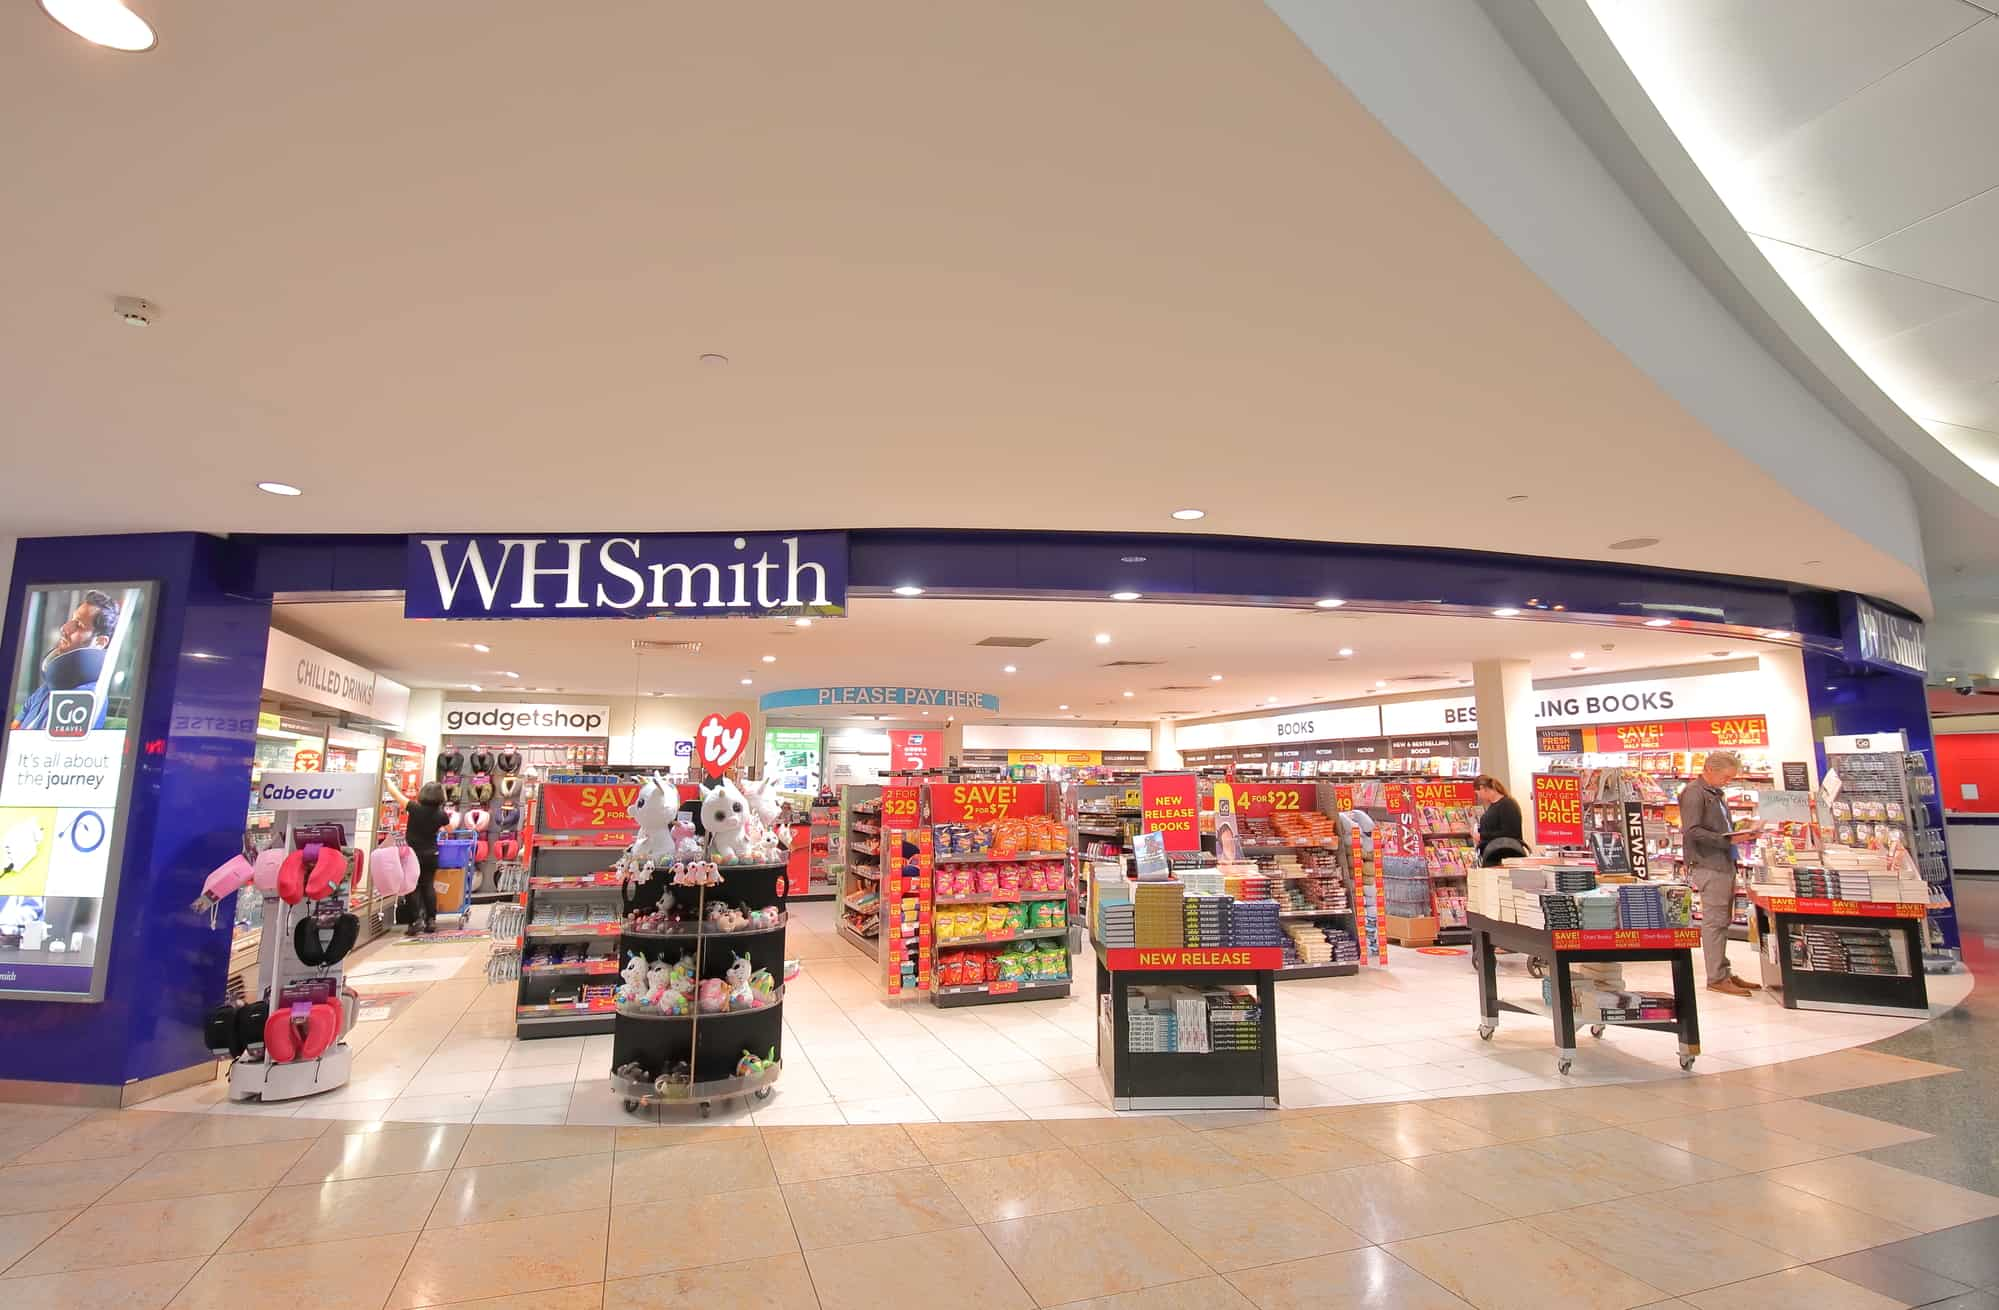 WHSmith's hospital and travel retailing experience growth